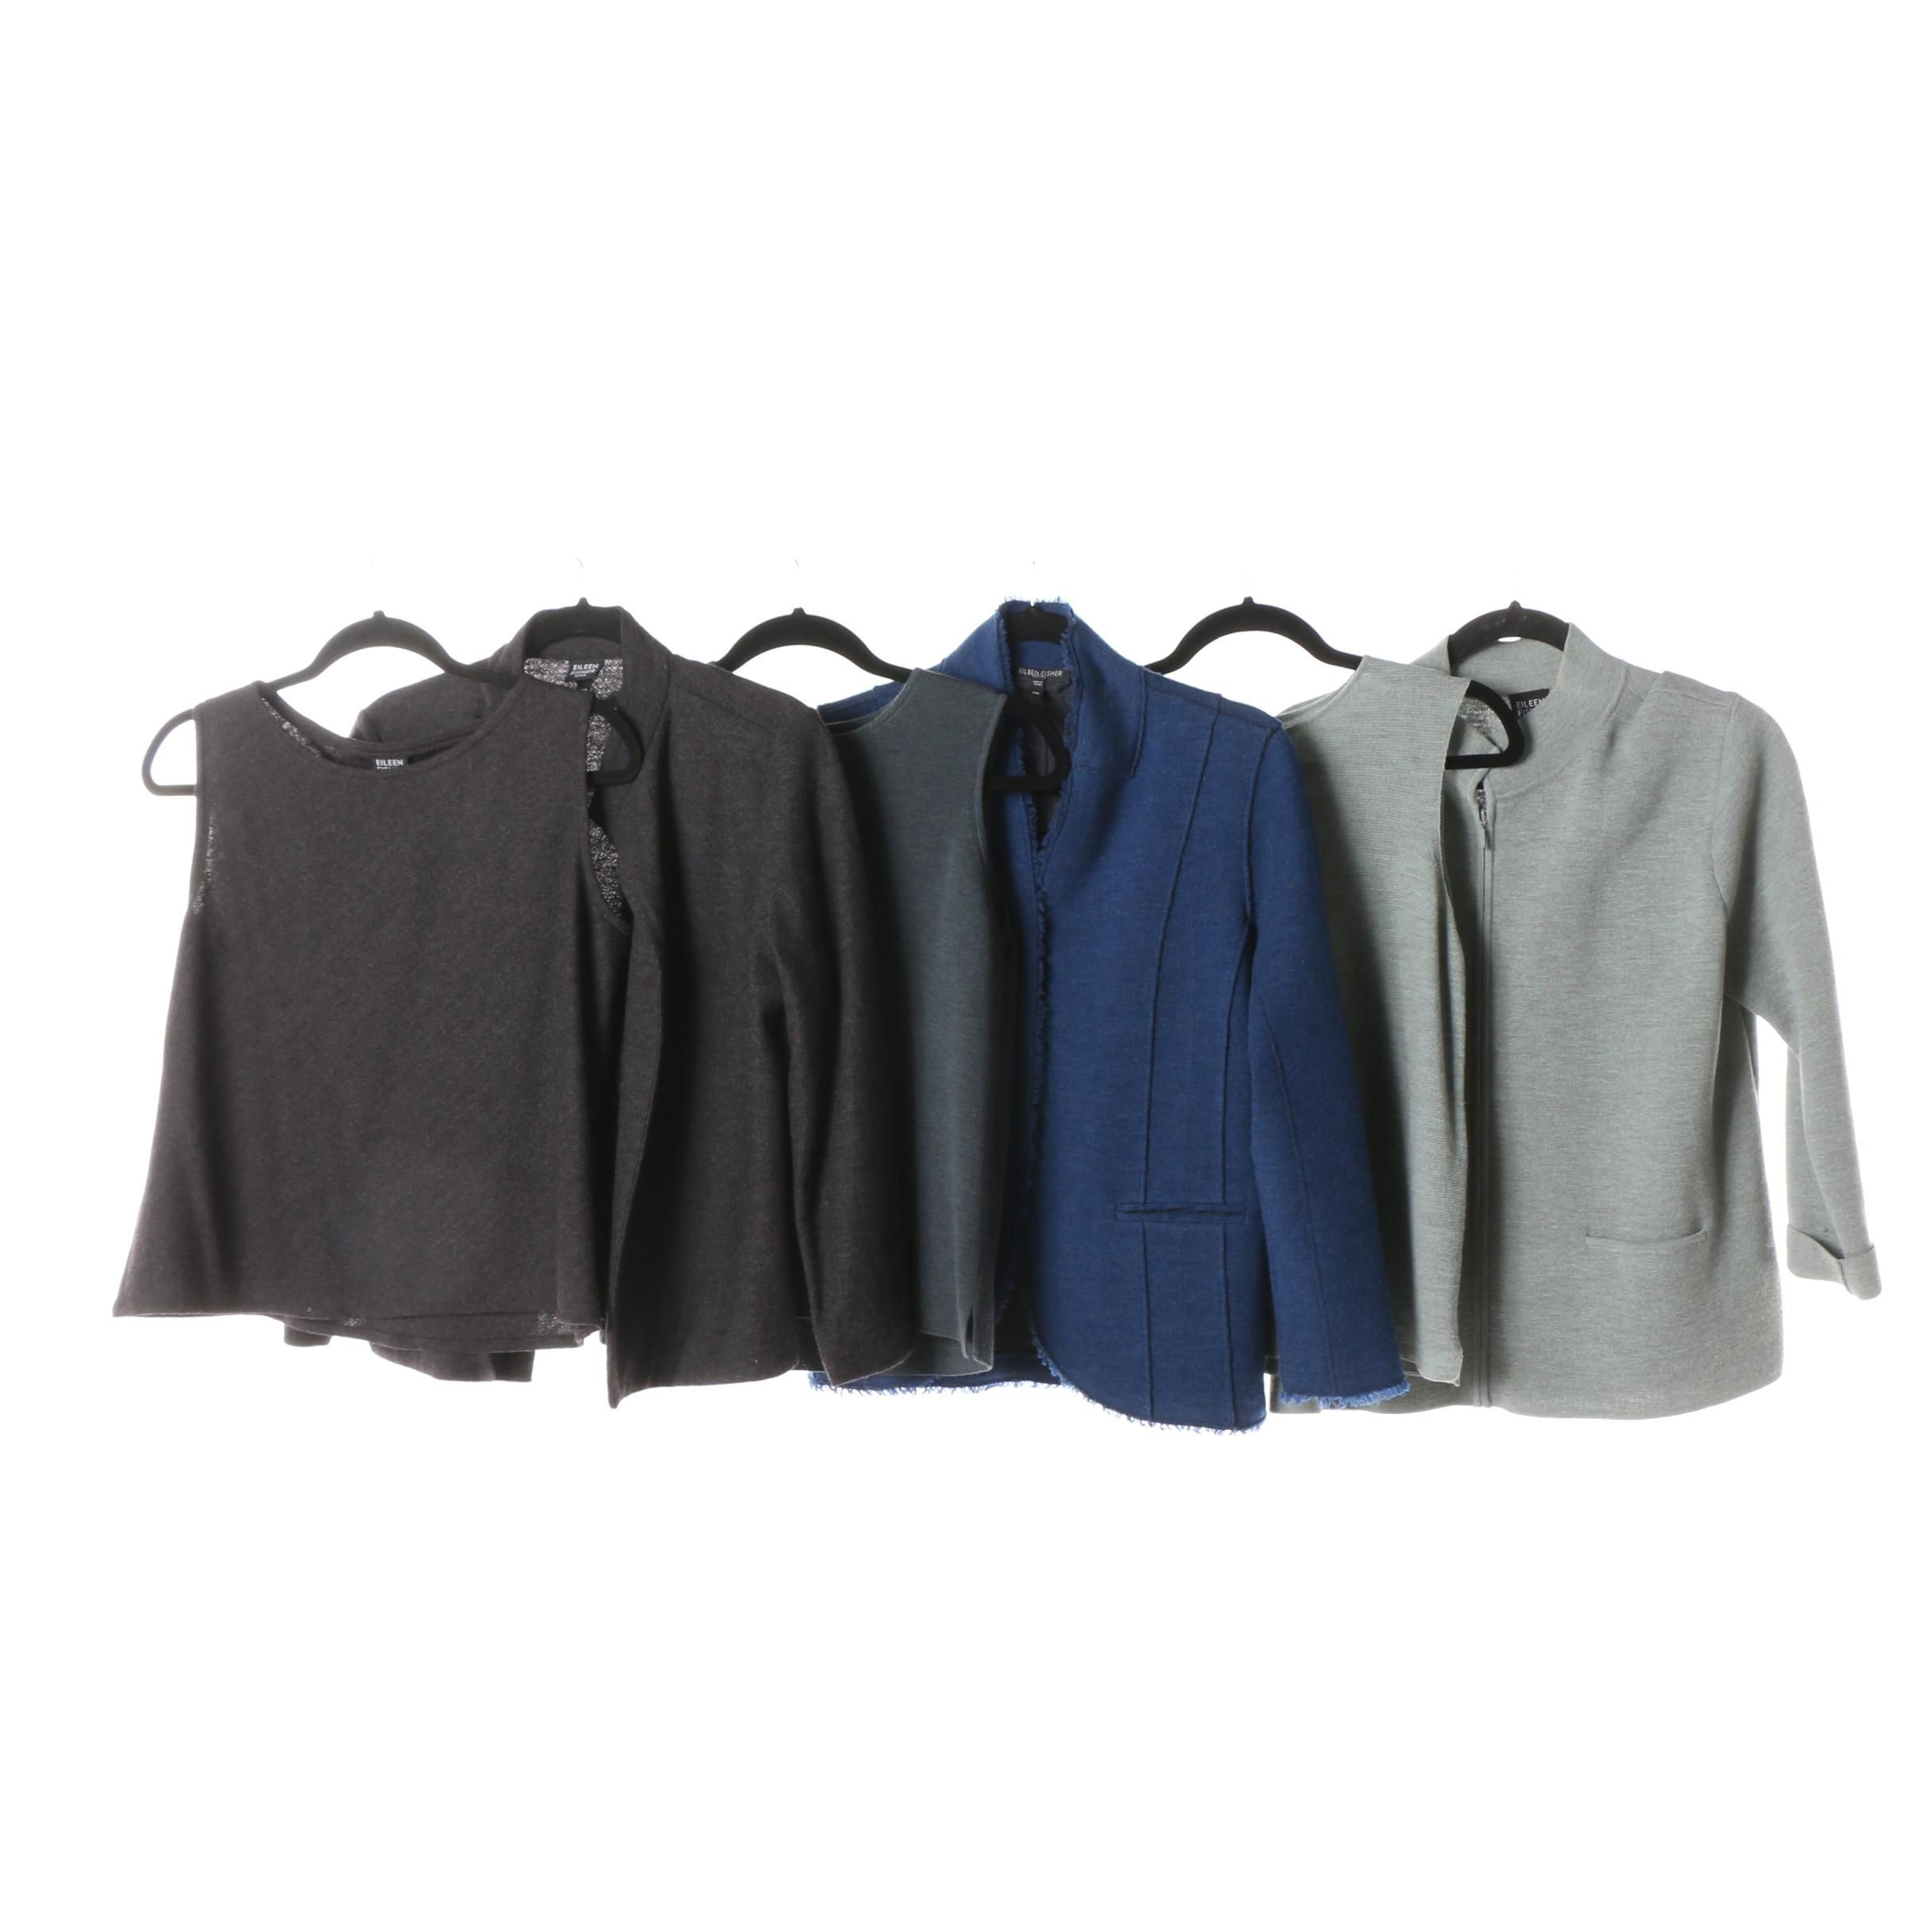 Eileen Fisher Knit Tops and Jackets